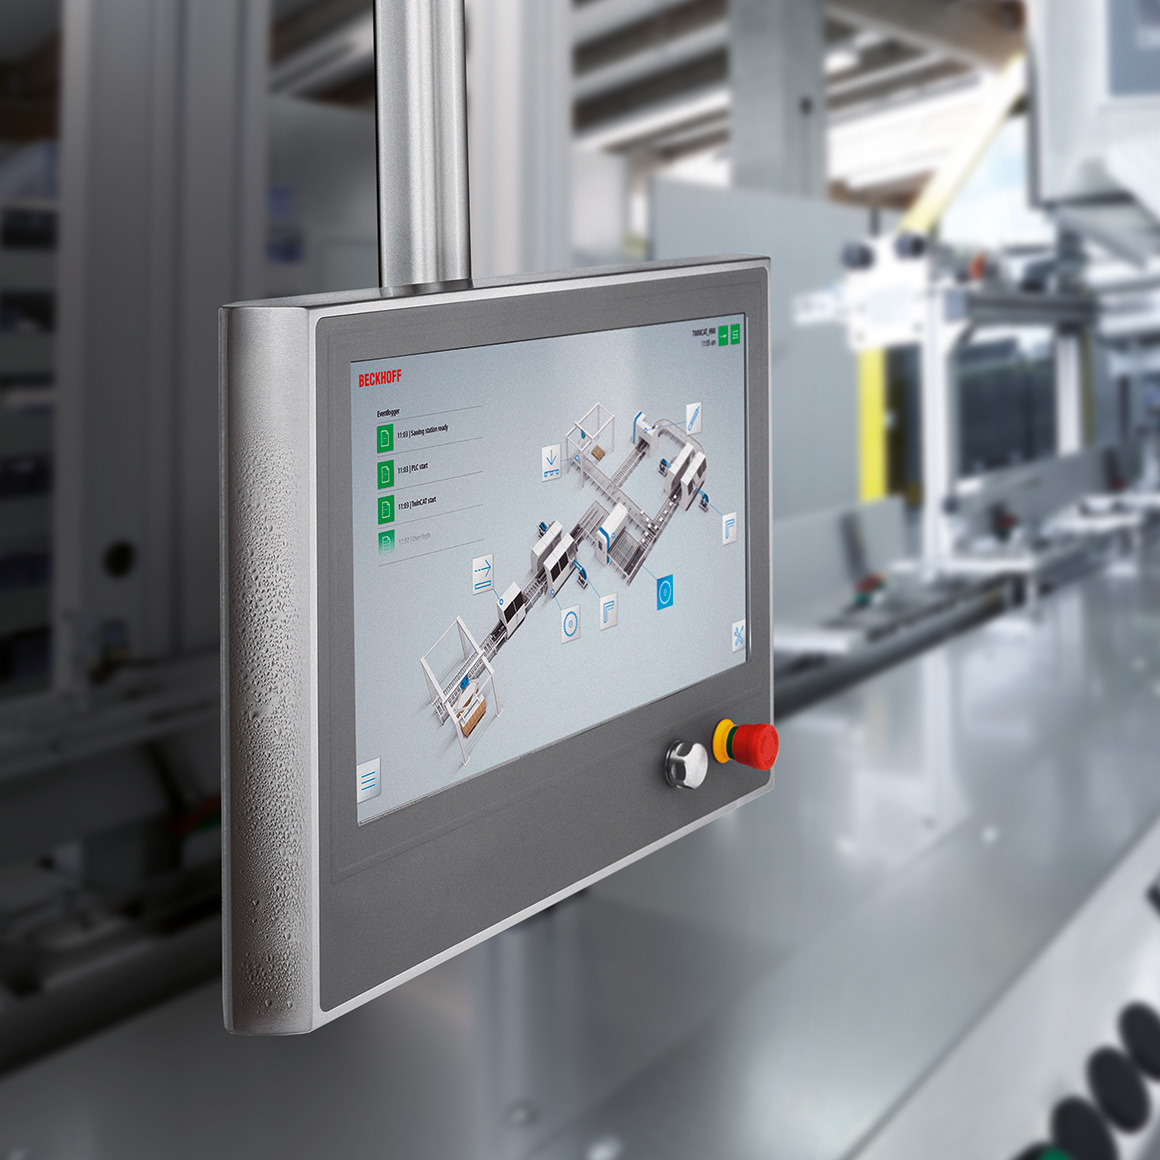 Control Panels in special stainless steel housings are used in the most demanding environments, such as the food, beverage and pharmaceutical industries.